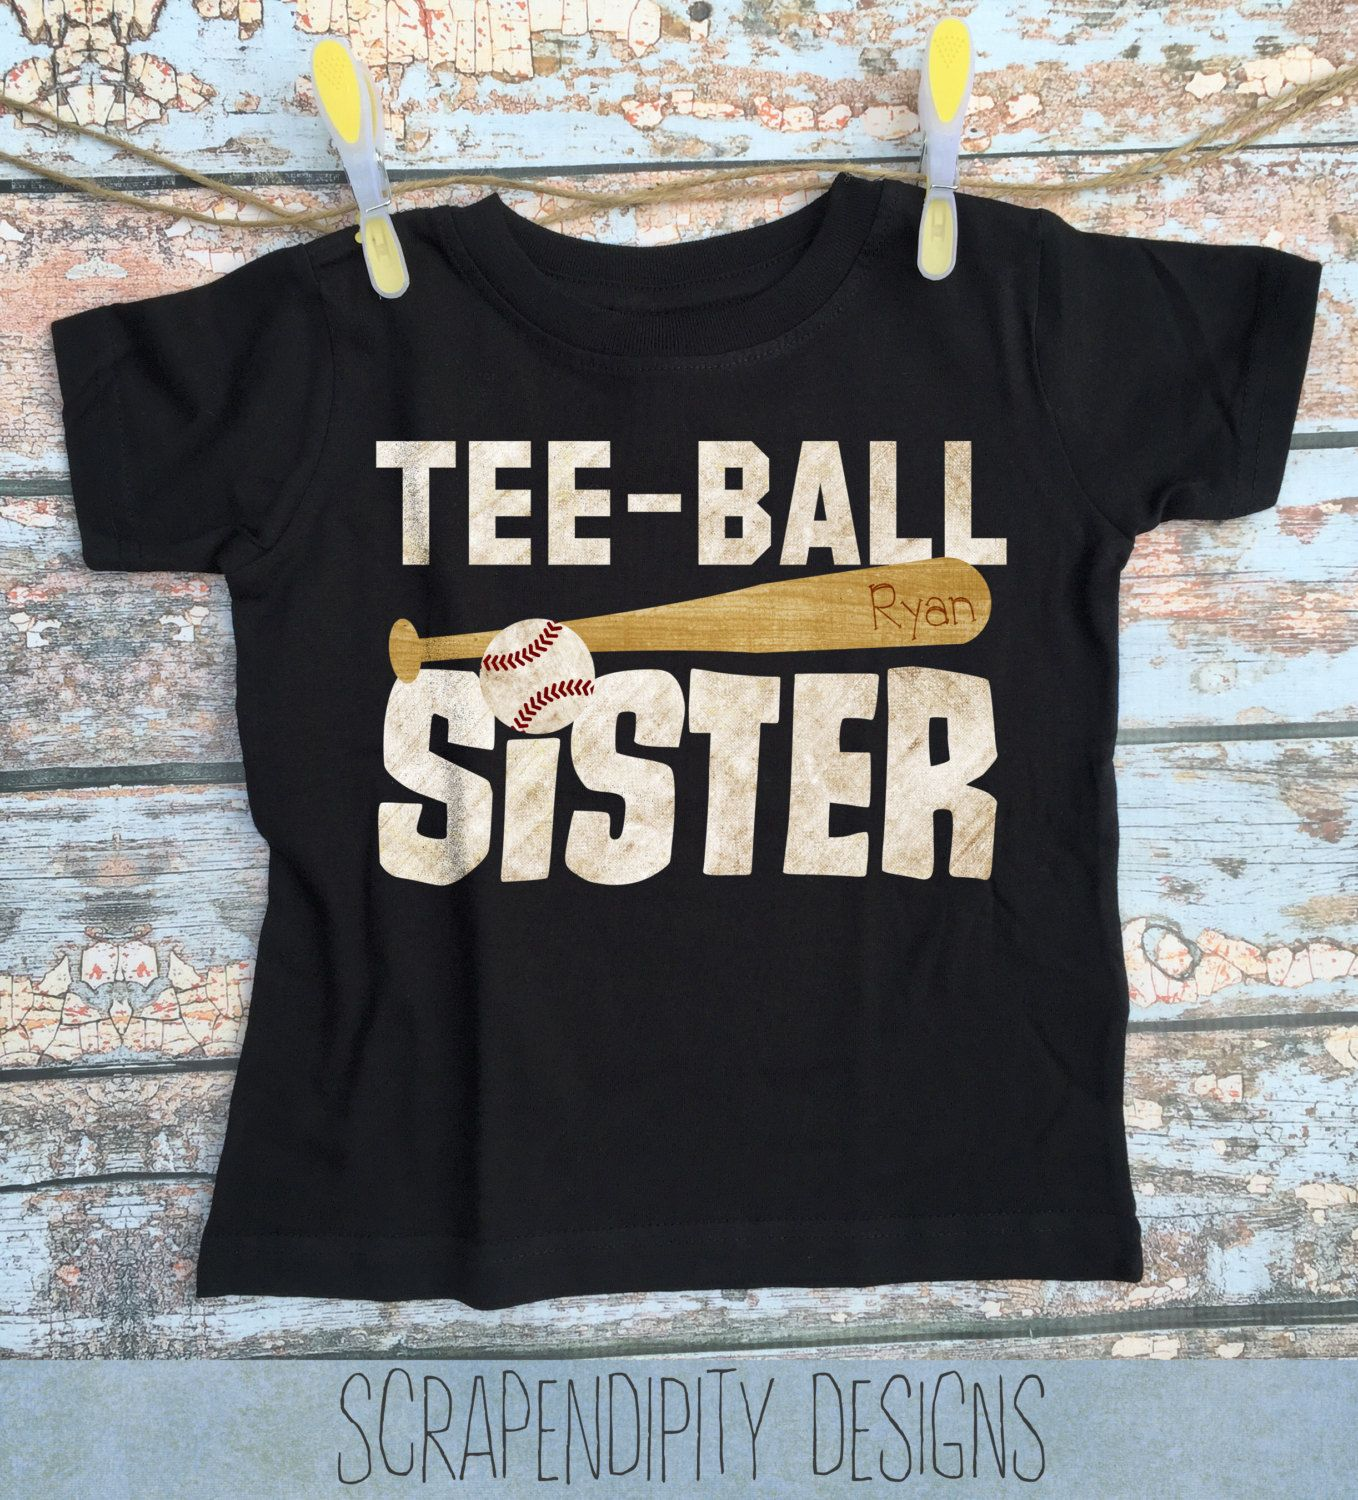 a71a4964dbe0 Teeball Sister Shirt - Girls T-Ball Outfit   Toddler Tee Ball Shirt    Teeball Family Clothes   Customized Tshirt   Tee Ball Brother Shirt by  Scrapendipitees ...